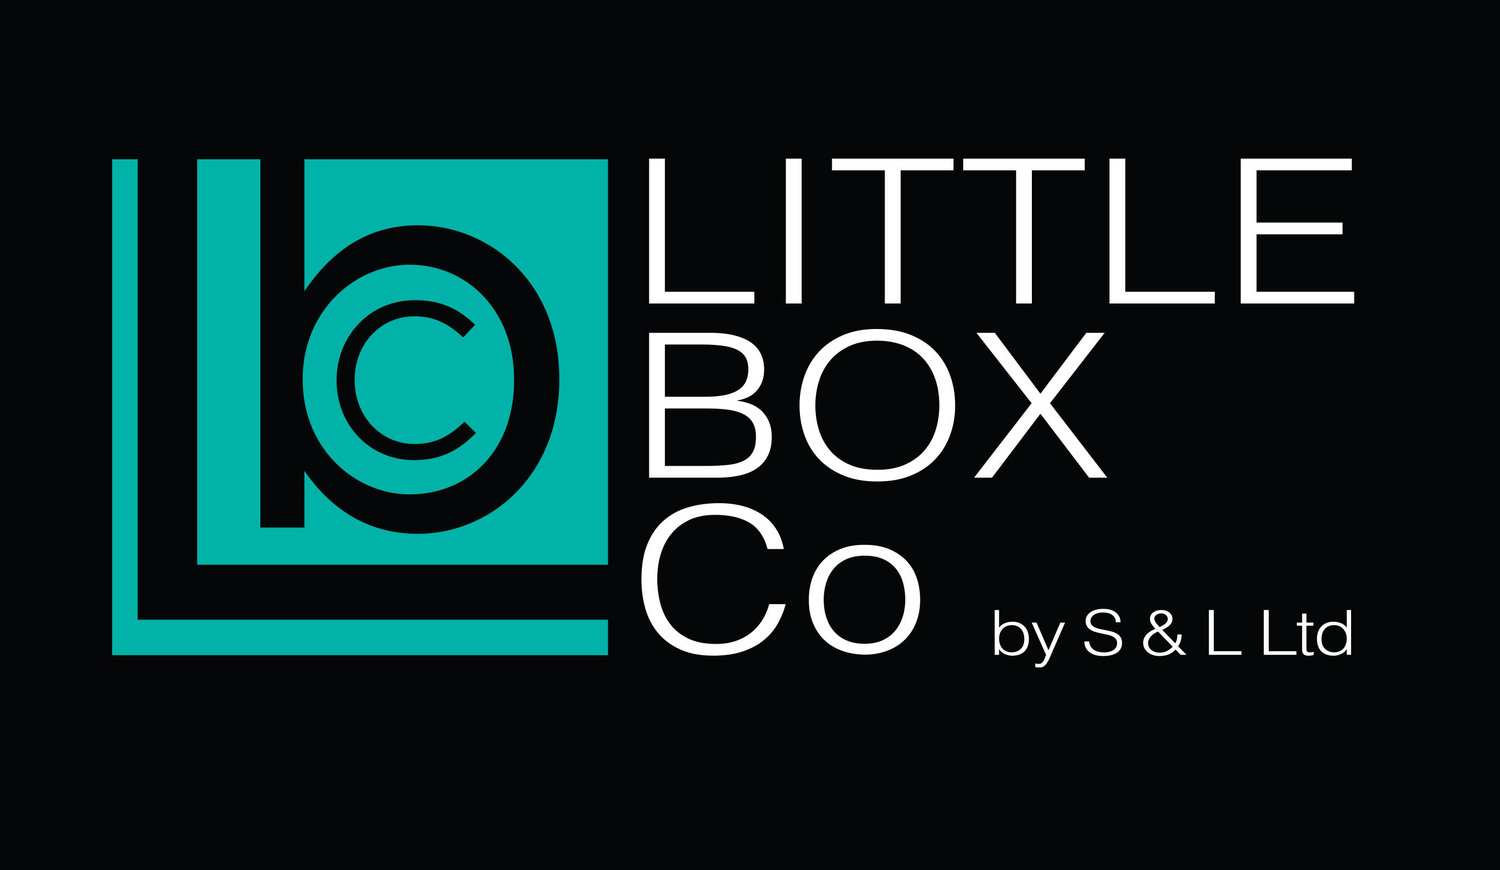 LITTLE BOX COMPANY